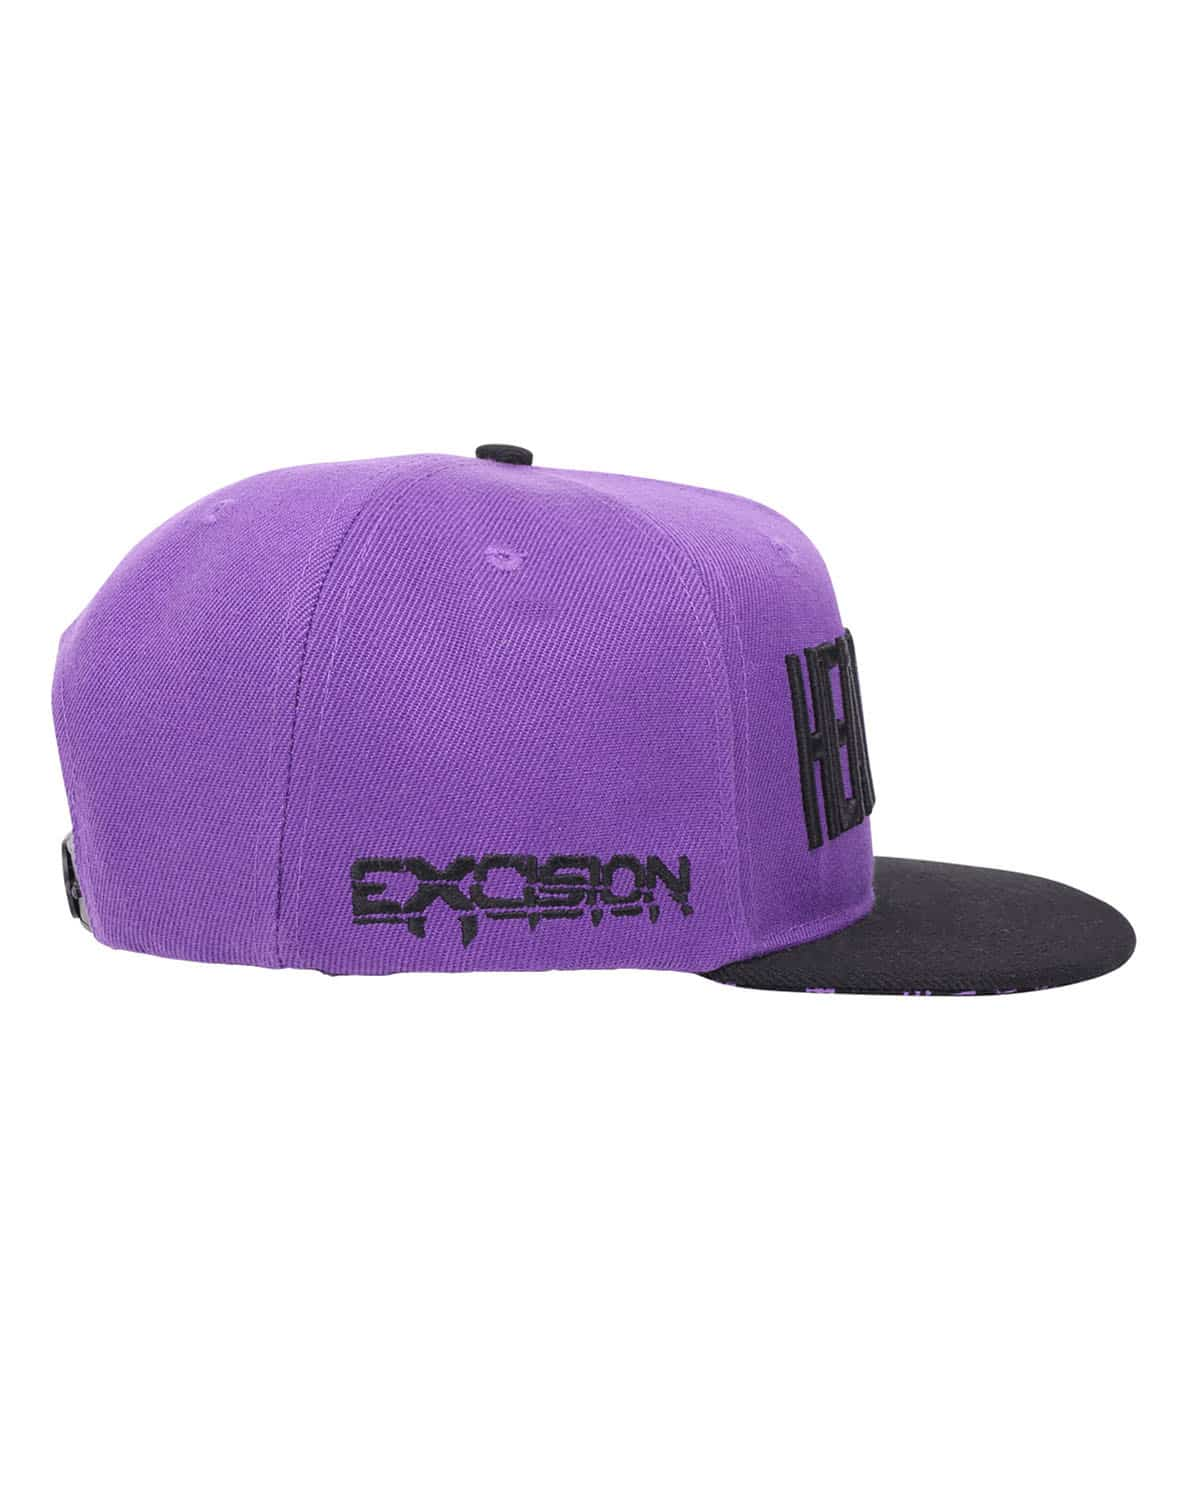 'Headbanger' Snapback - Purple/Black